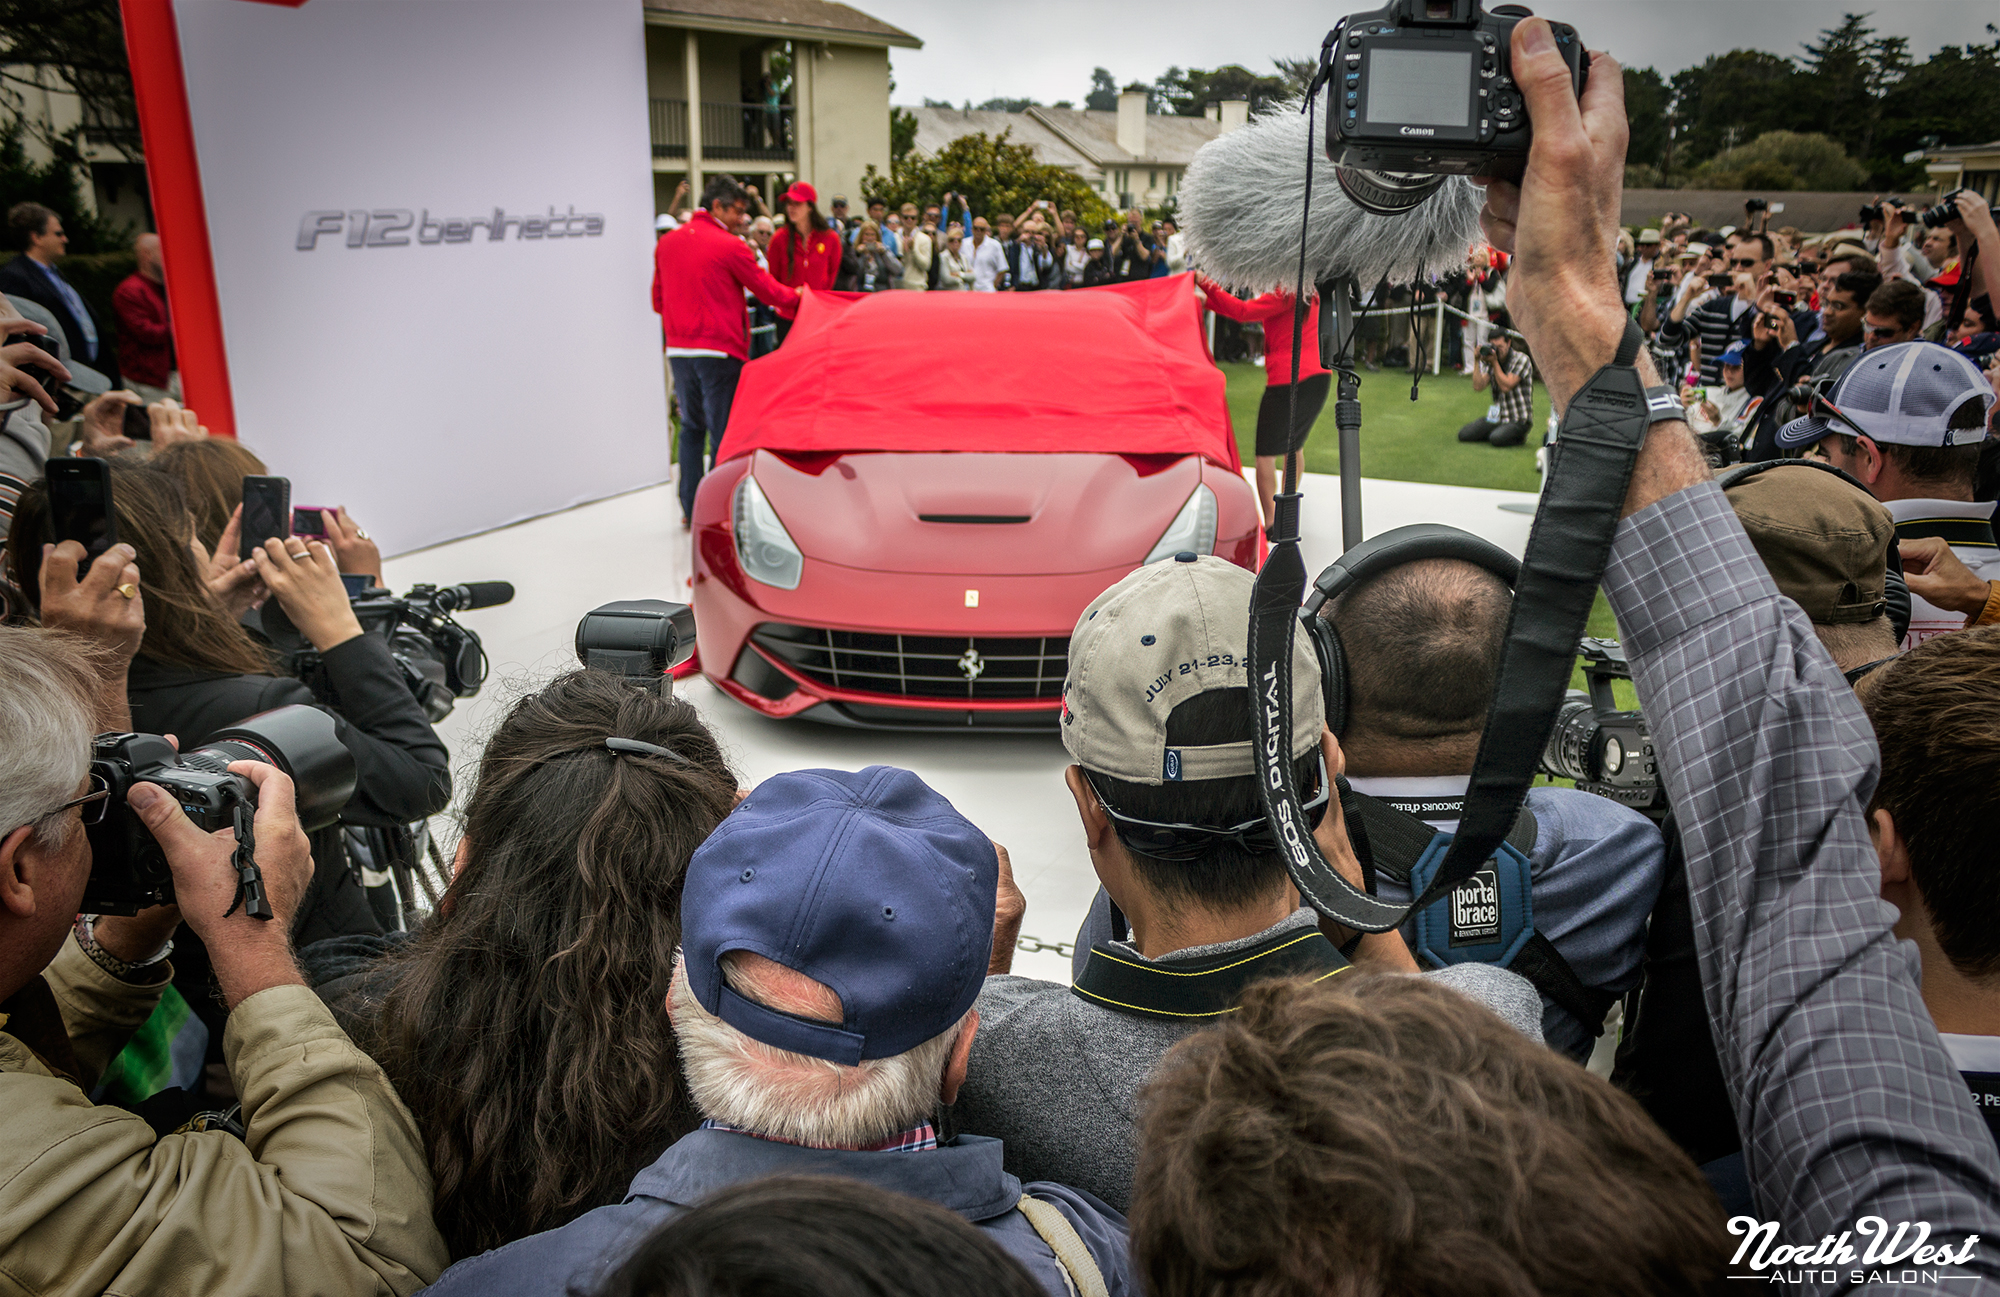 NorthWest Auto Salon Pebble Beach Concours d'Elegance Ferrari F12